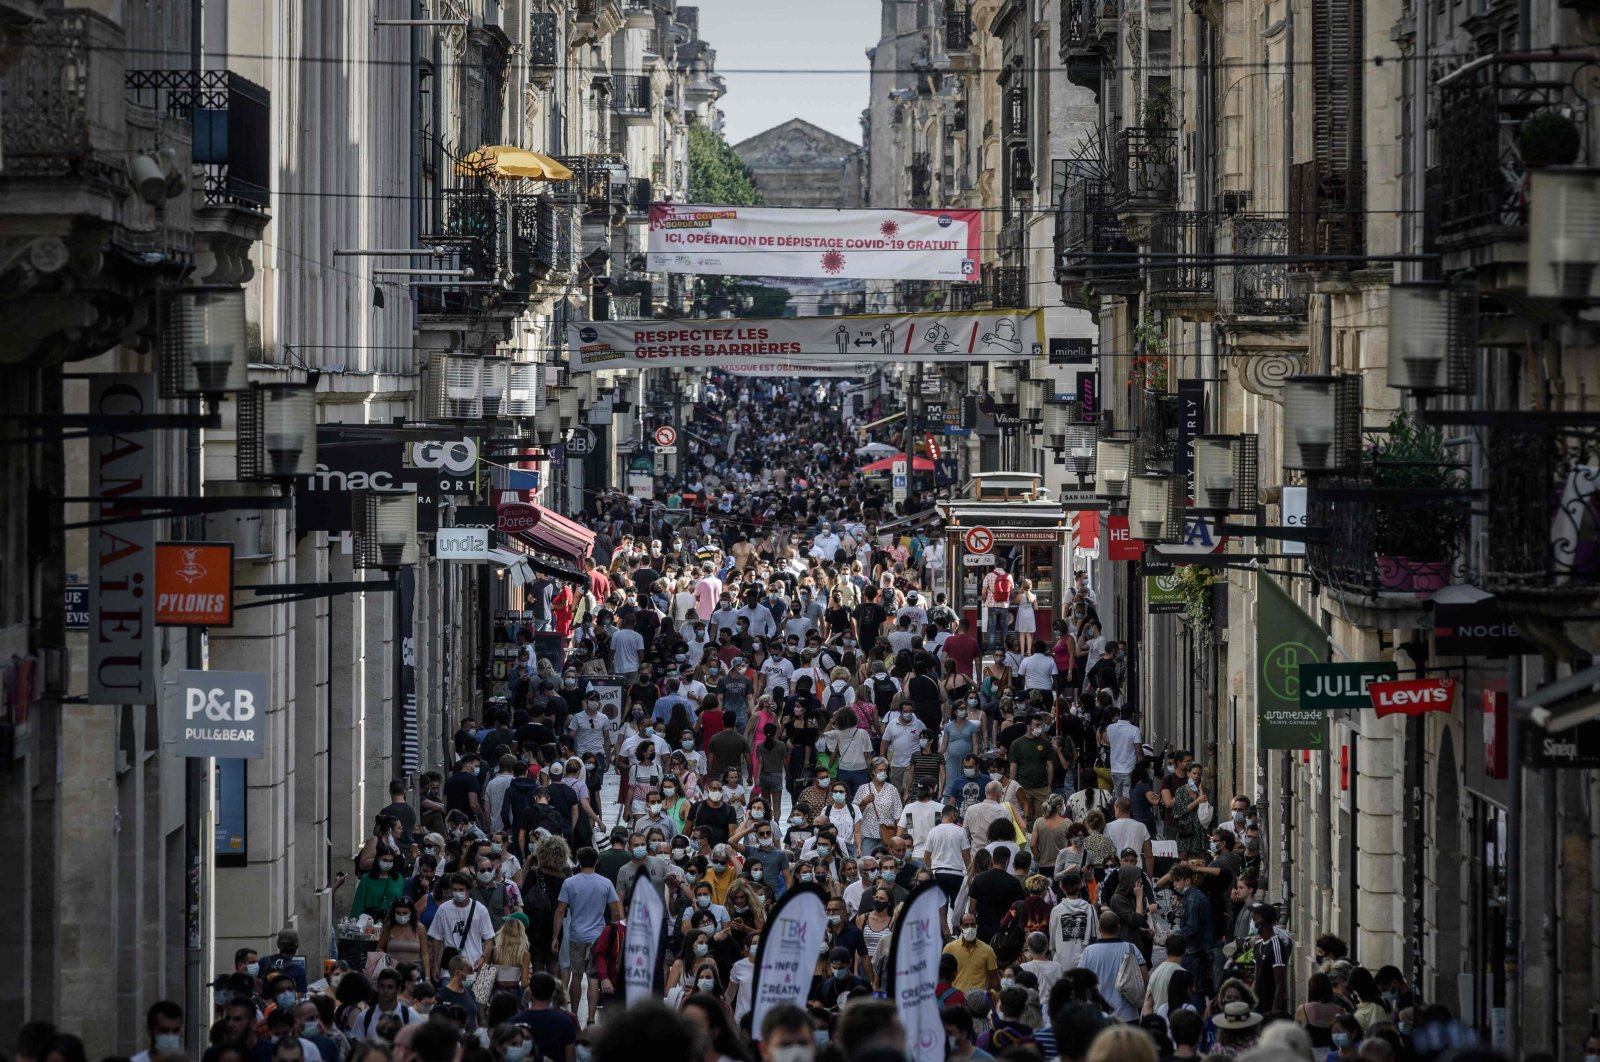 Pedestrians, some of them wearing protective face masks, walk along a street lined with shops, Bordeaux, France, Sept. 5, 2020. (AFP Photo)